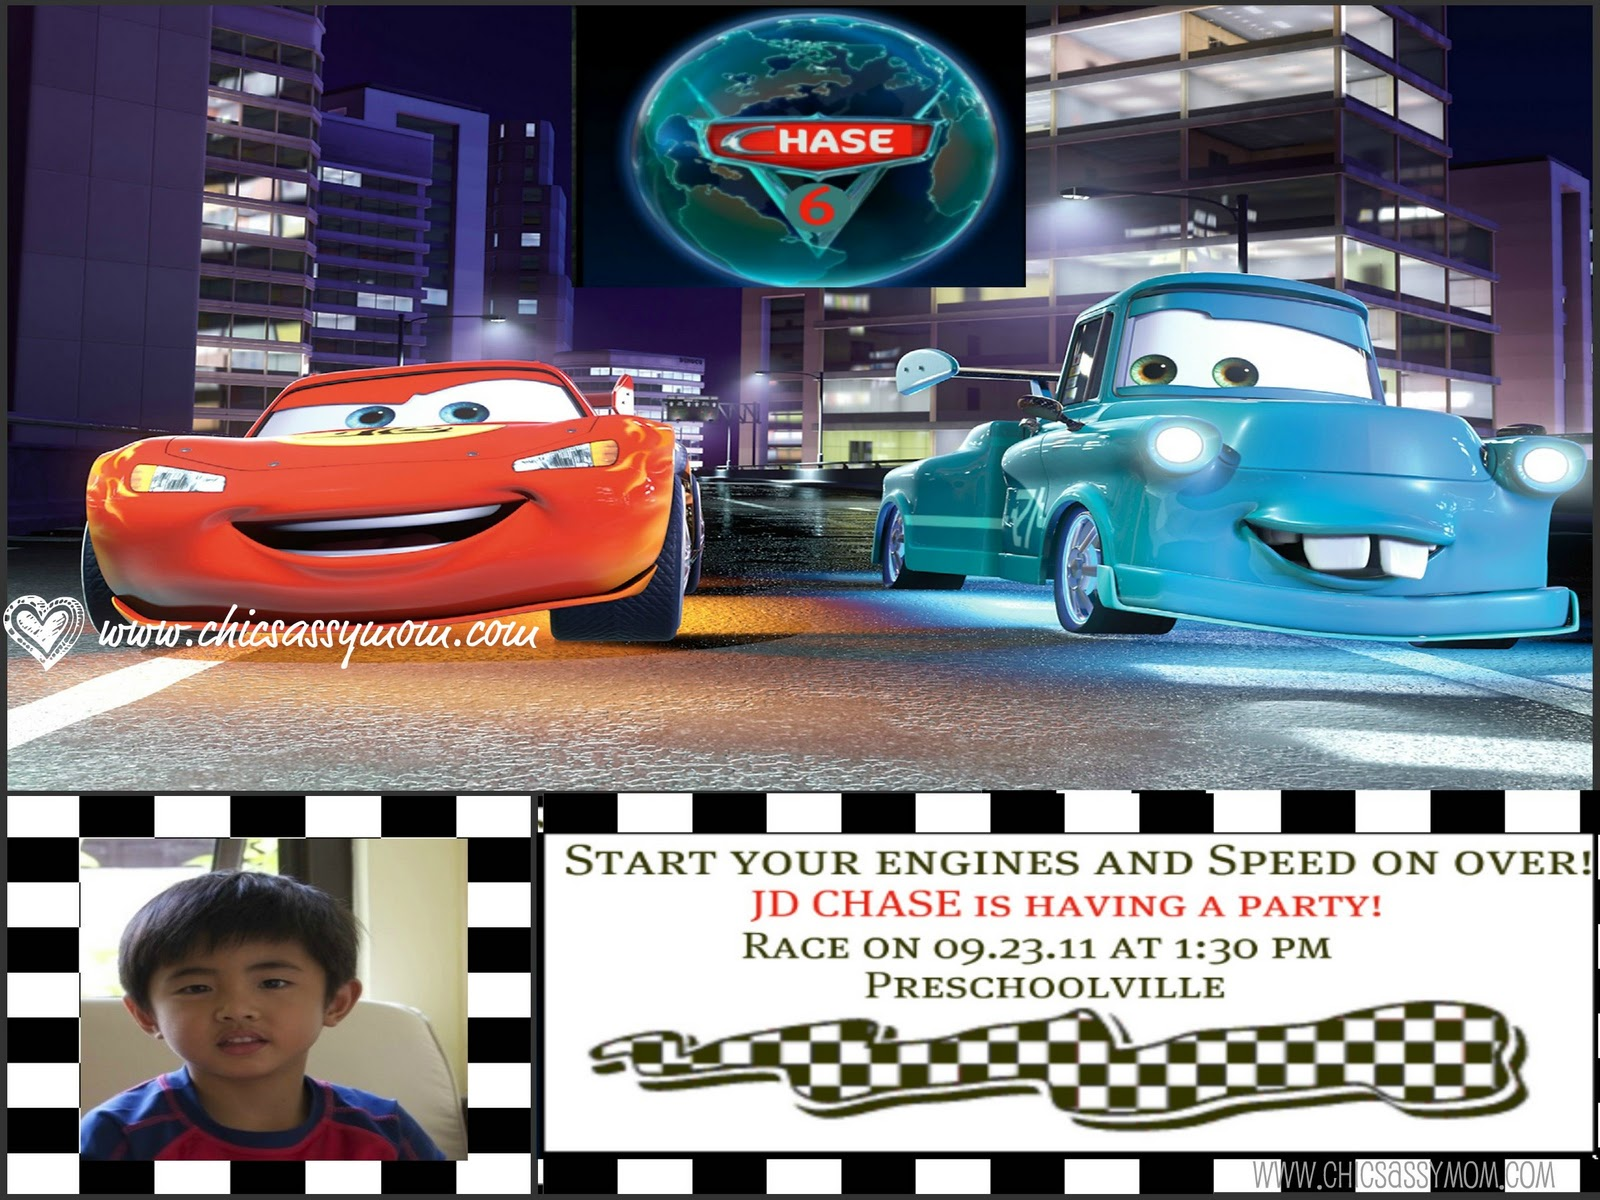 cars 2 birthday invitation template disney cars lightning mcqueen invitation template disney cars 2 theme school birthday party